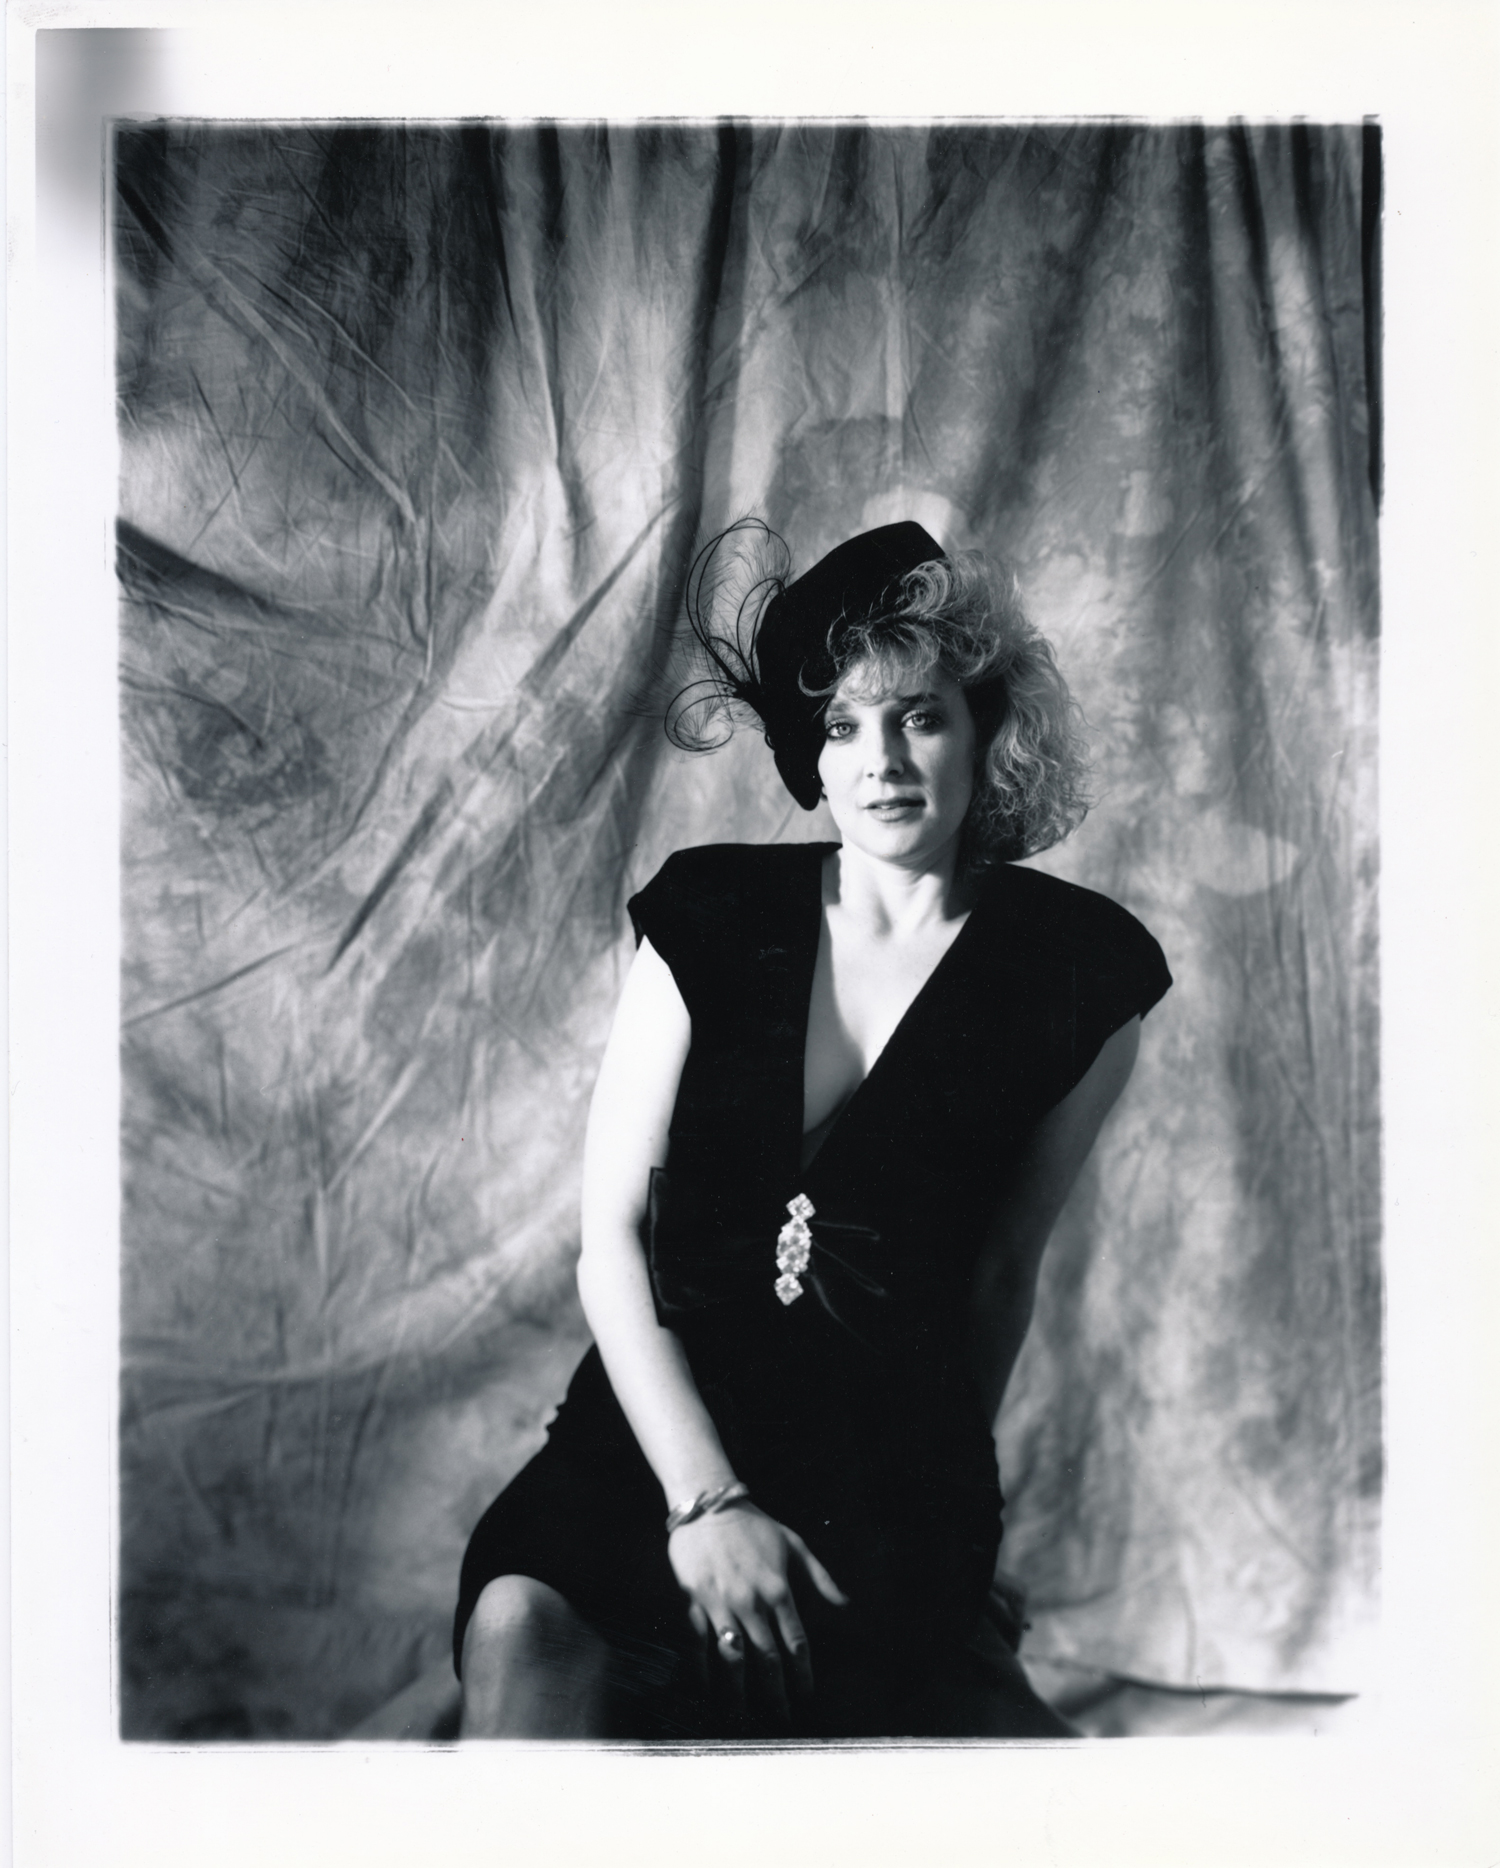 Cindy with Feather Hat   4x5 silver print.  © Jud Burgess  1990